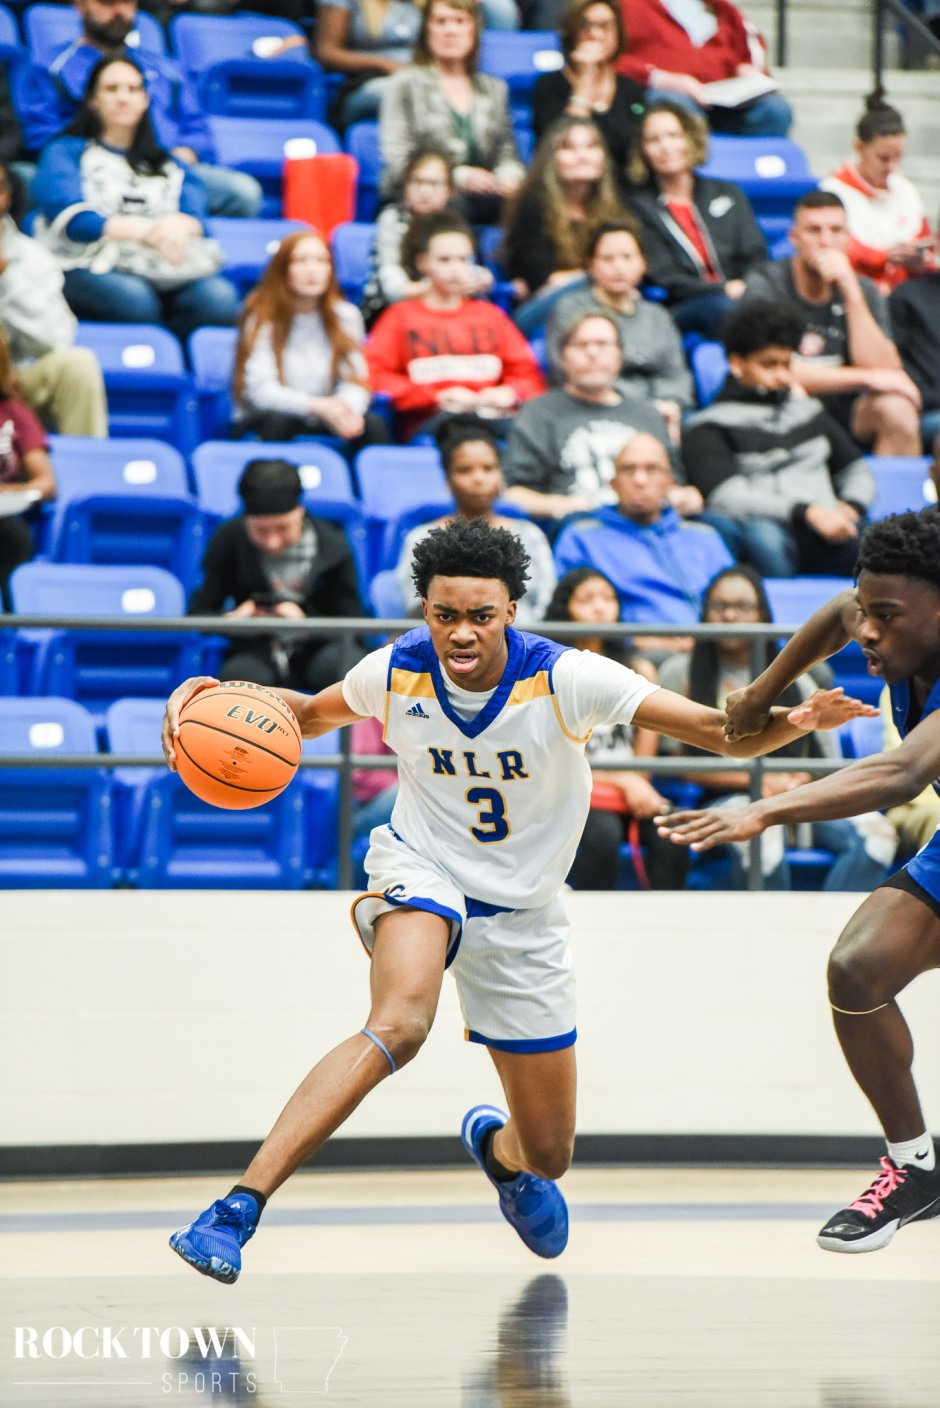 NLR_conway_bball_2020(i)-25